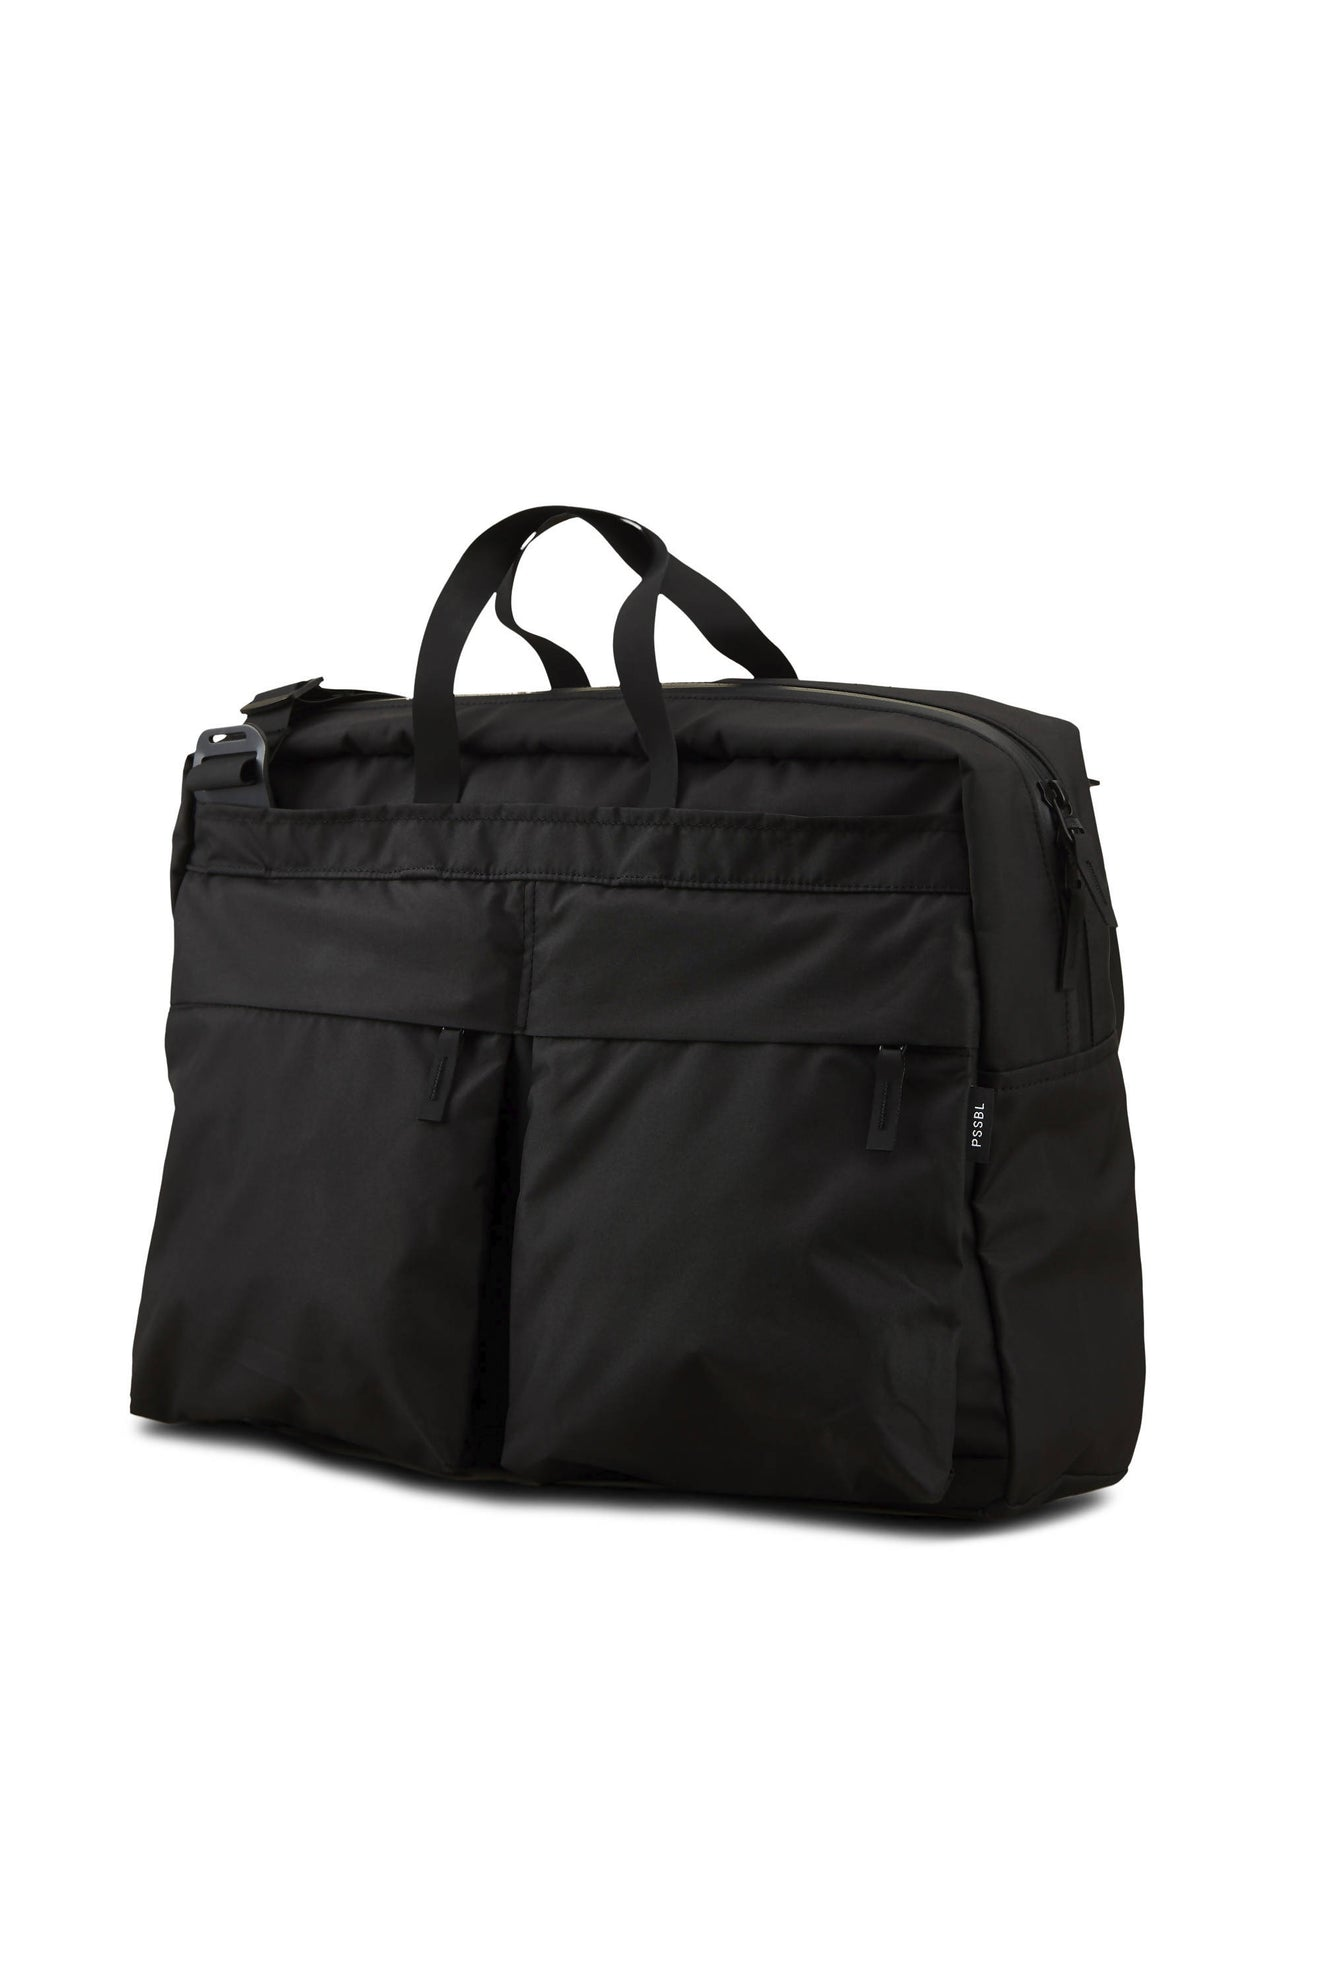 PSSBL THE COURIER BAG BLACK